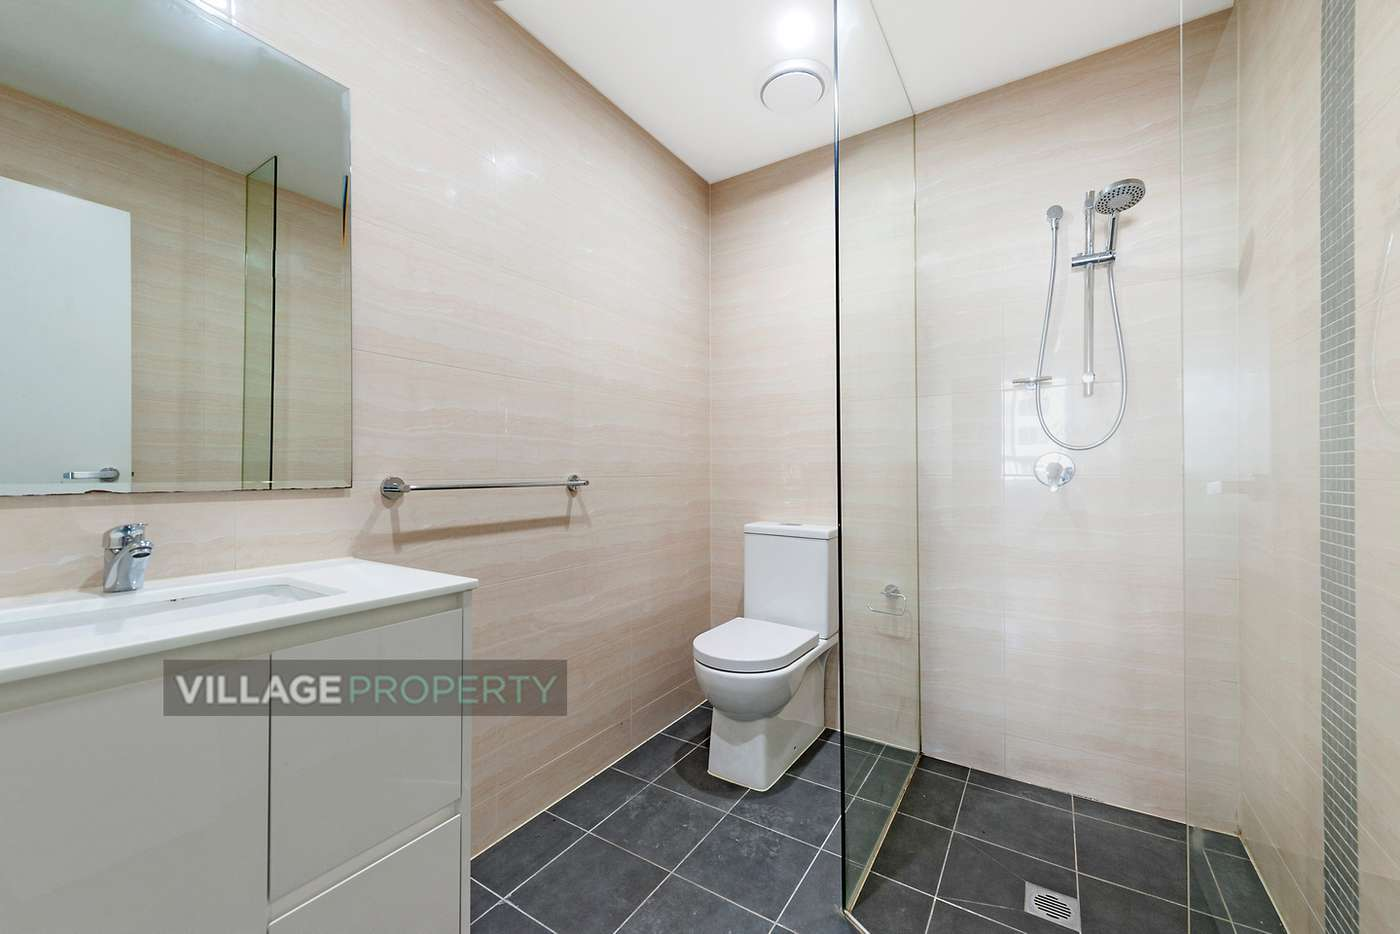 Sixth view of Homely apartment listing, 3209/1A Morton Street, Parramatta NSW 2150